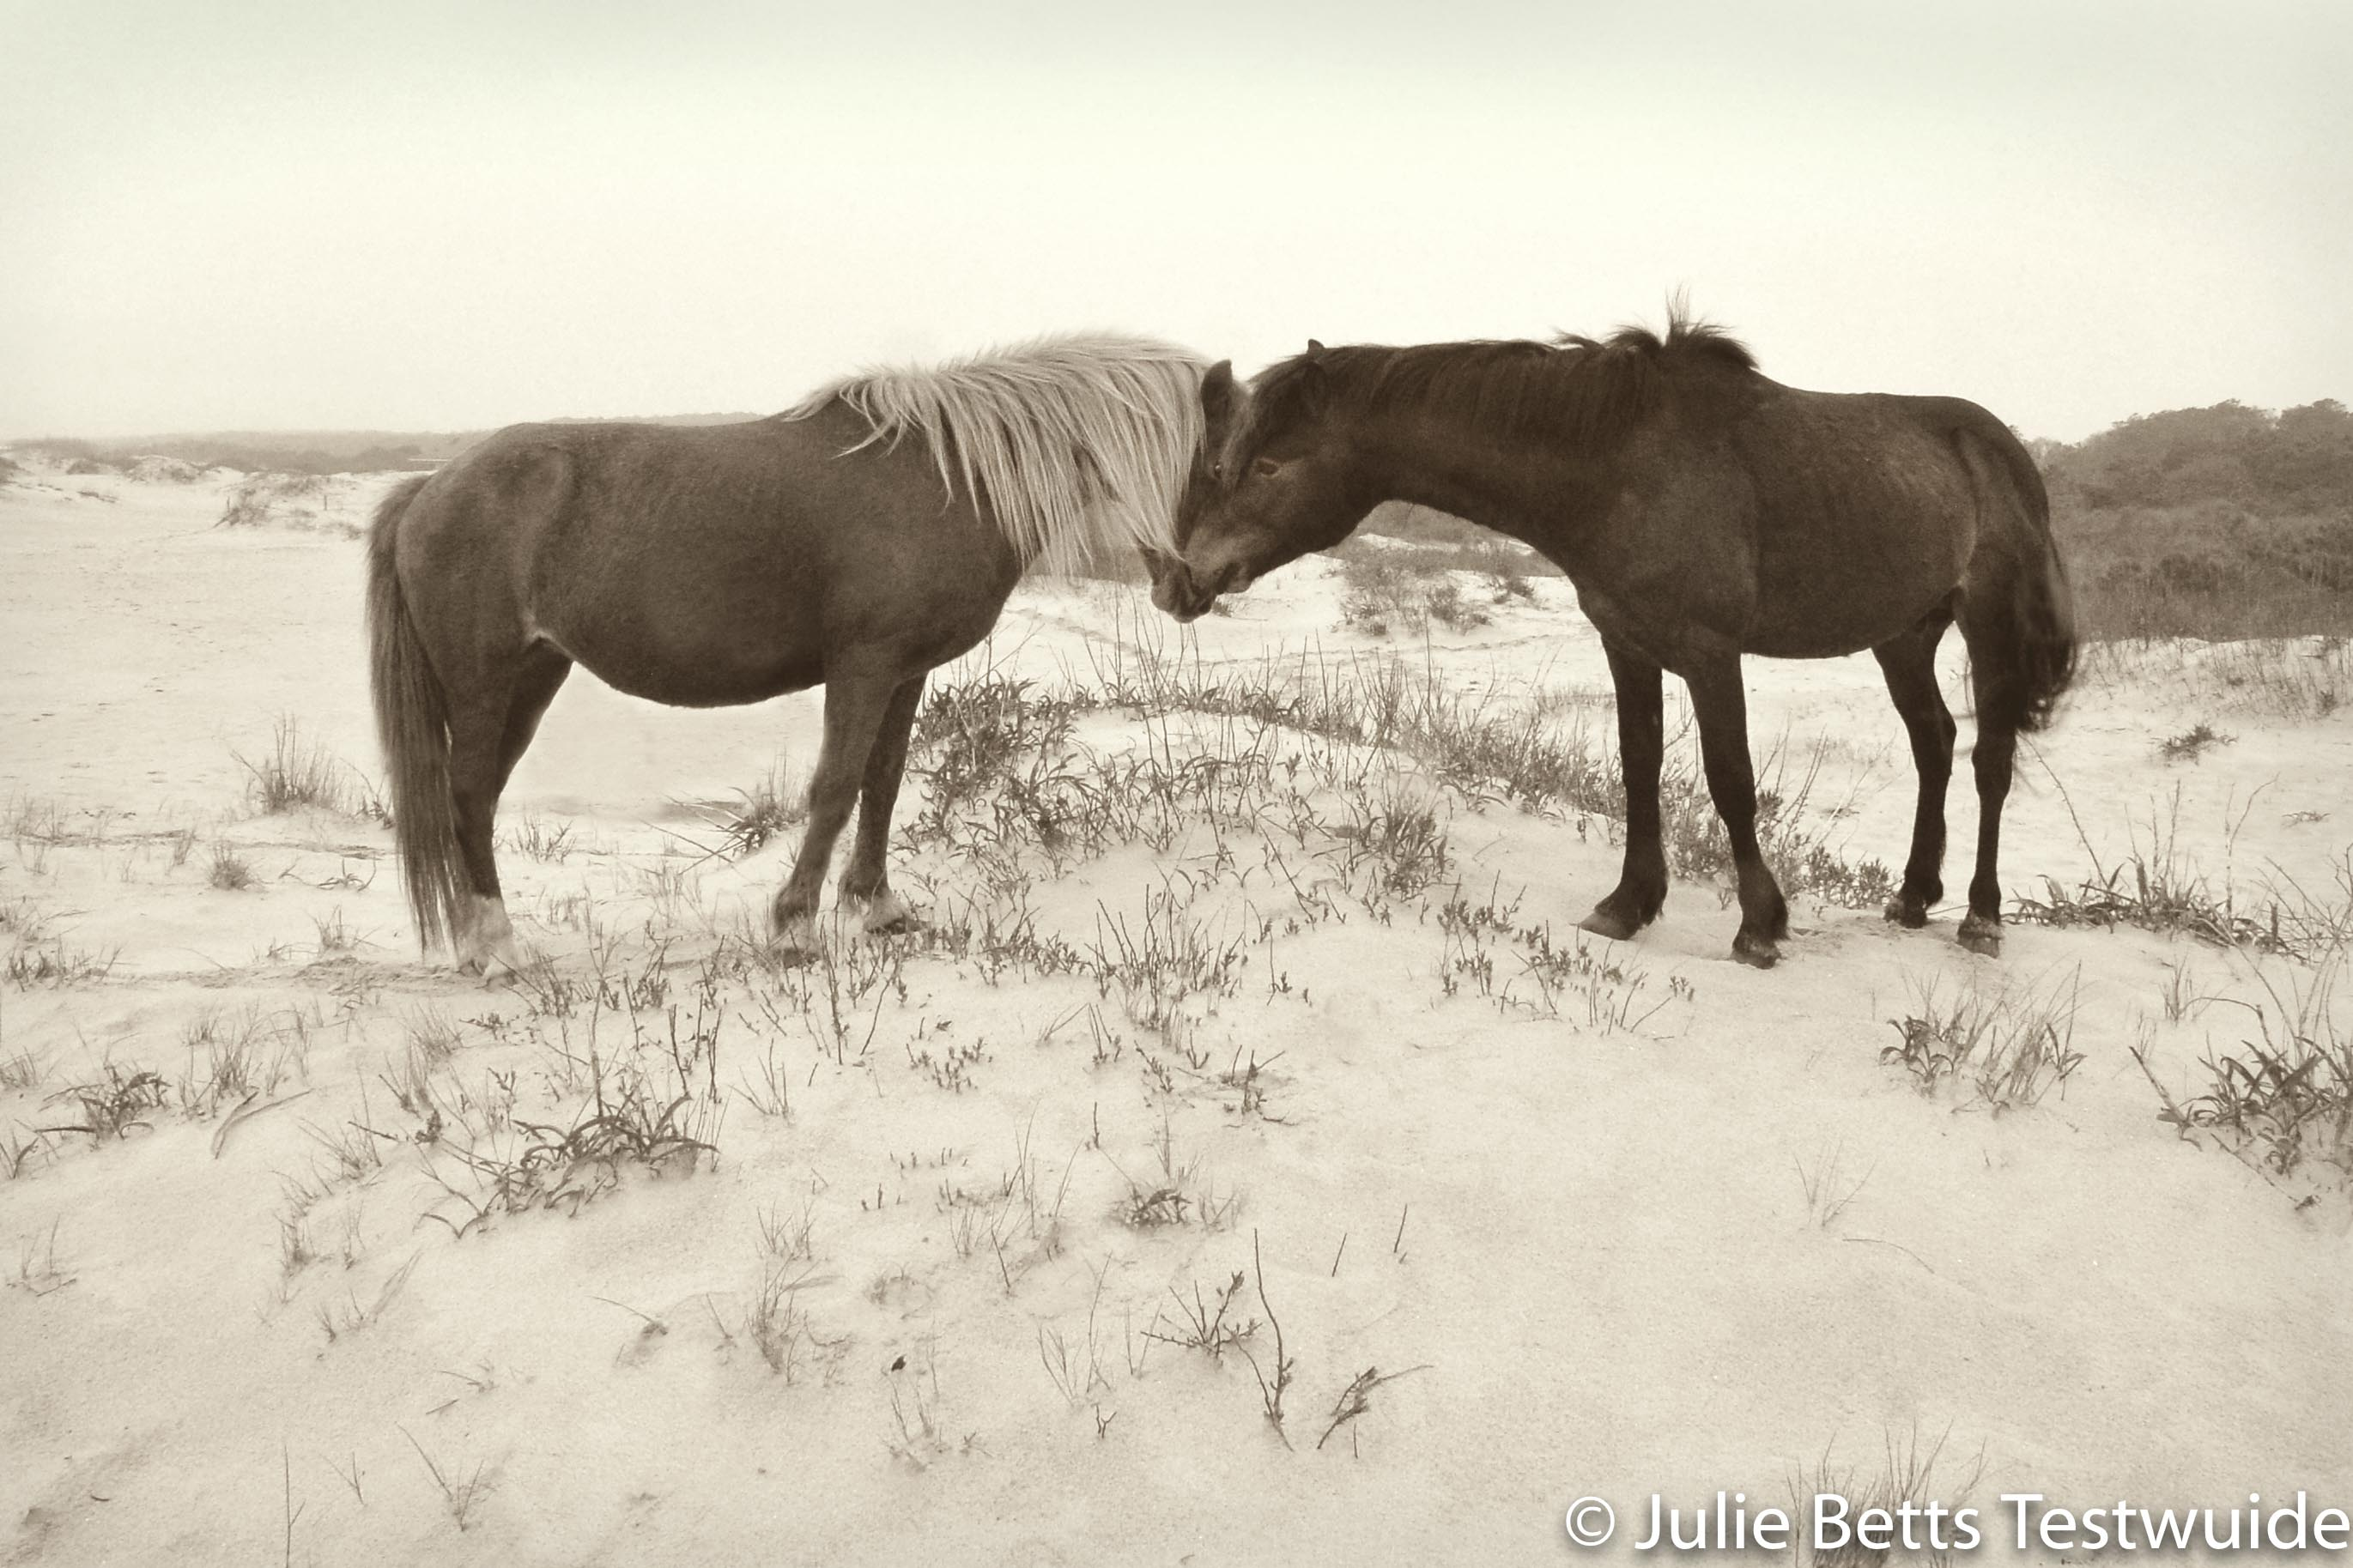 wild horses nuzzling in the dunes